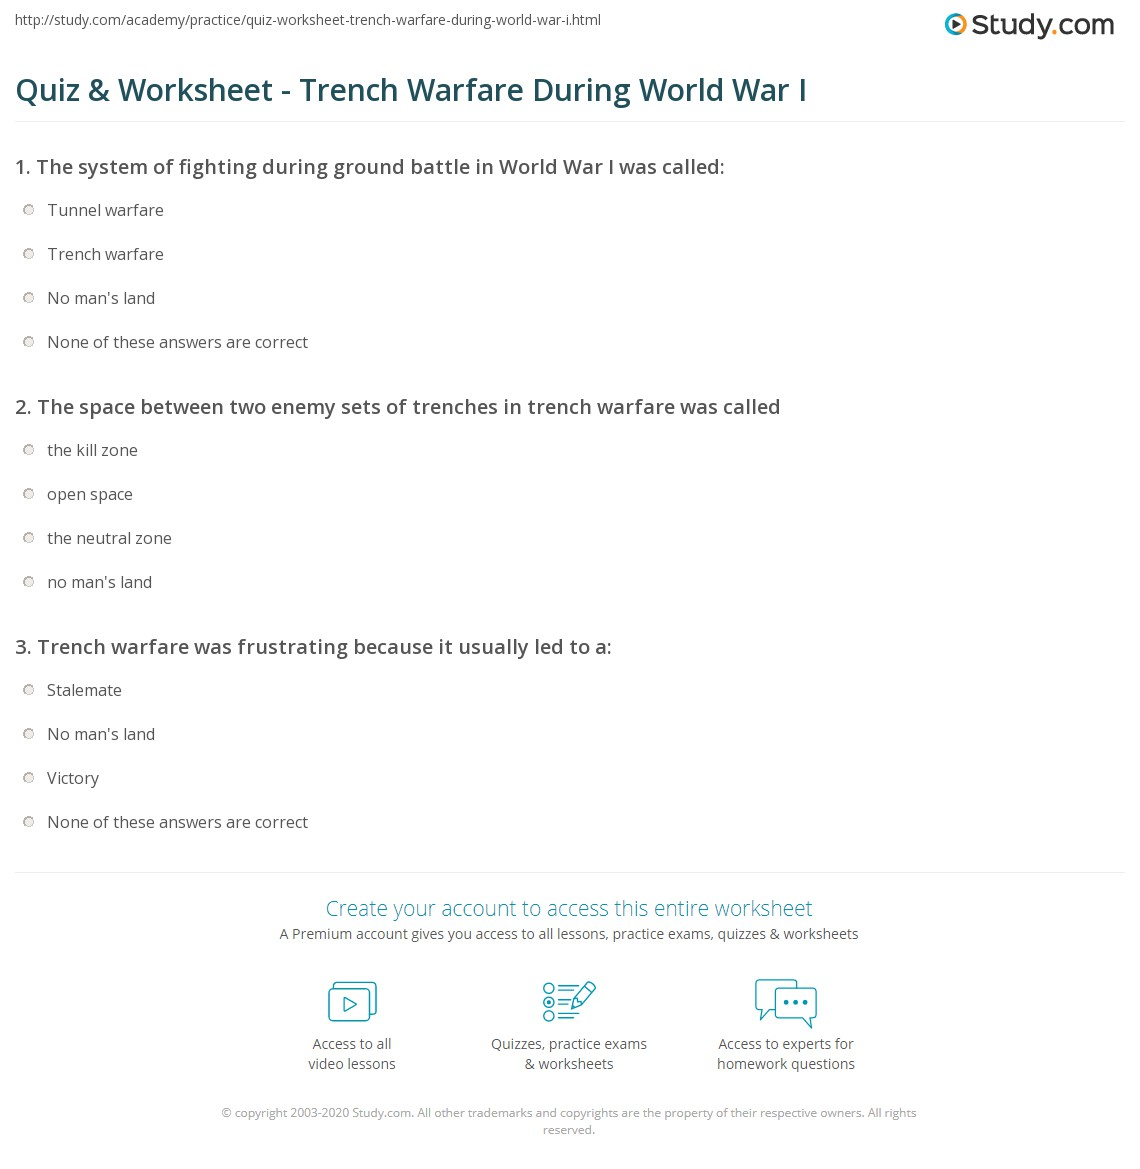 a study on trench war More than 1 million troops were infected with trench fever during world war  war study, venning reported that trench fever  trench diseases in world war.